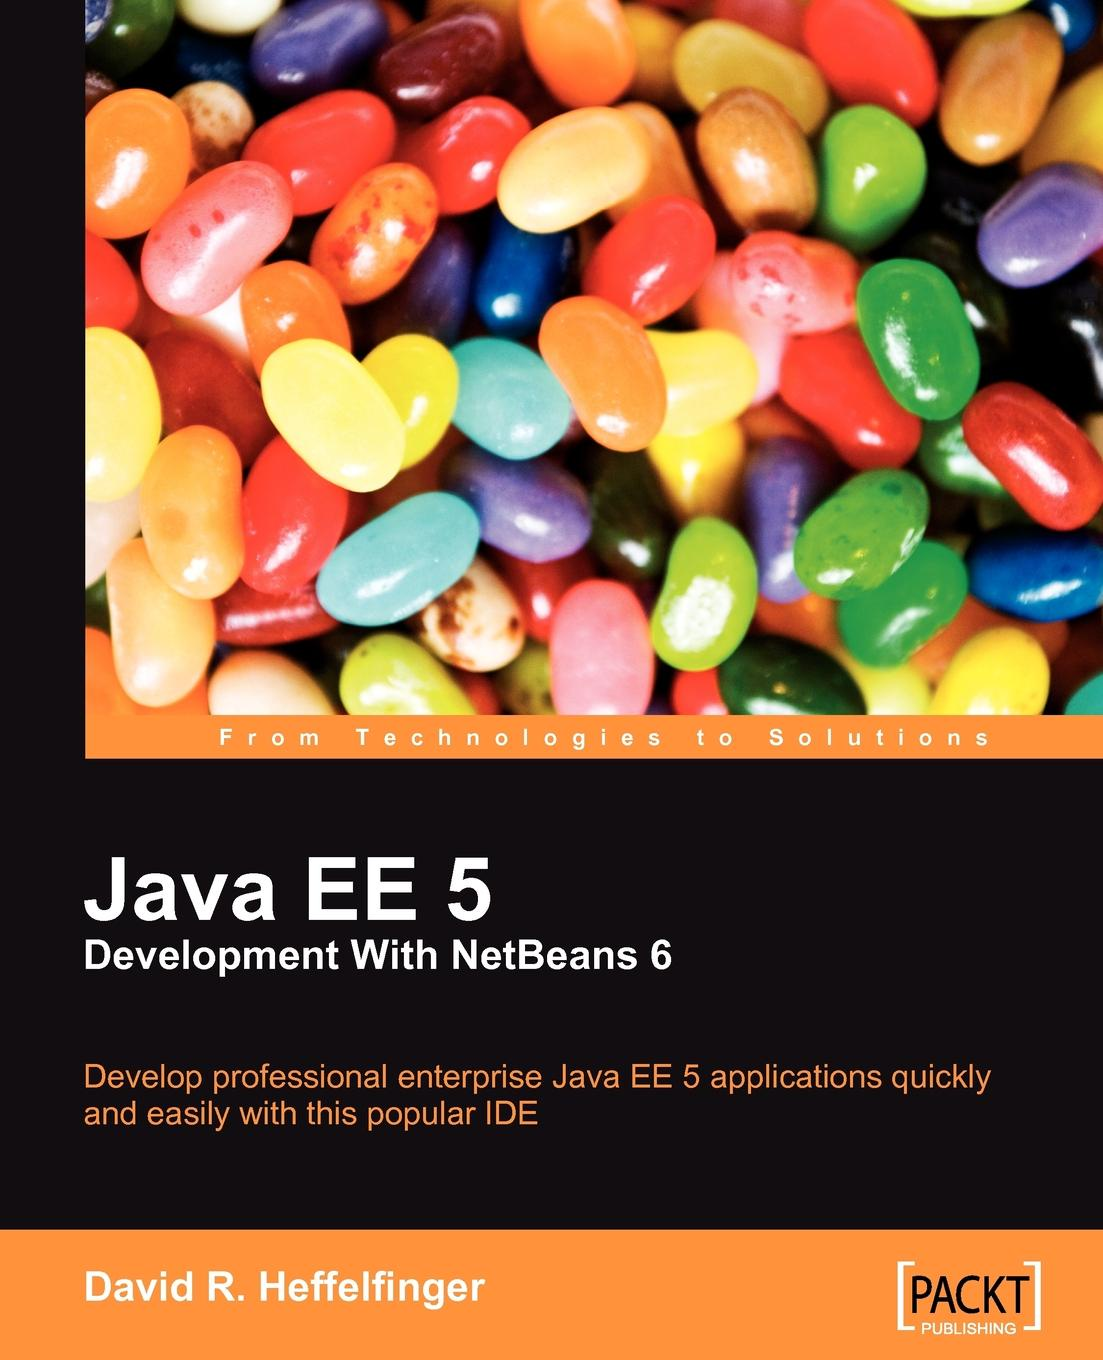 David R. Heffelfinger Java EE Development with NetBeans deepak vohra advanced java ee development with wildfly